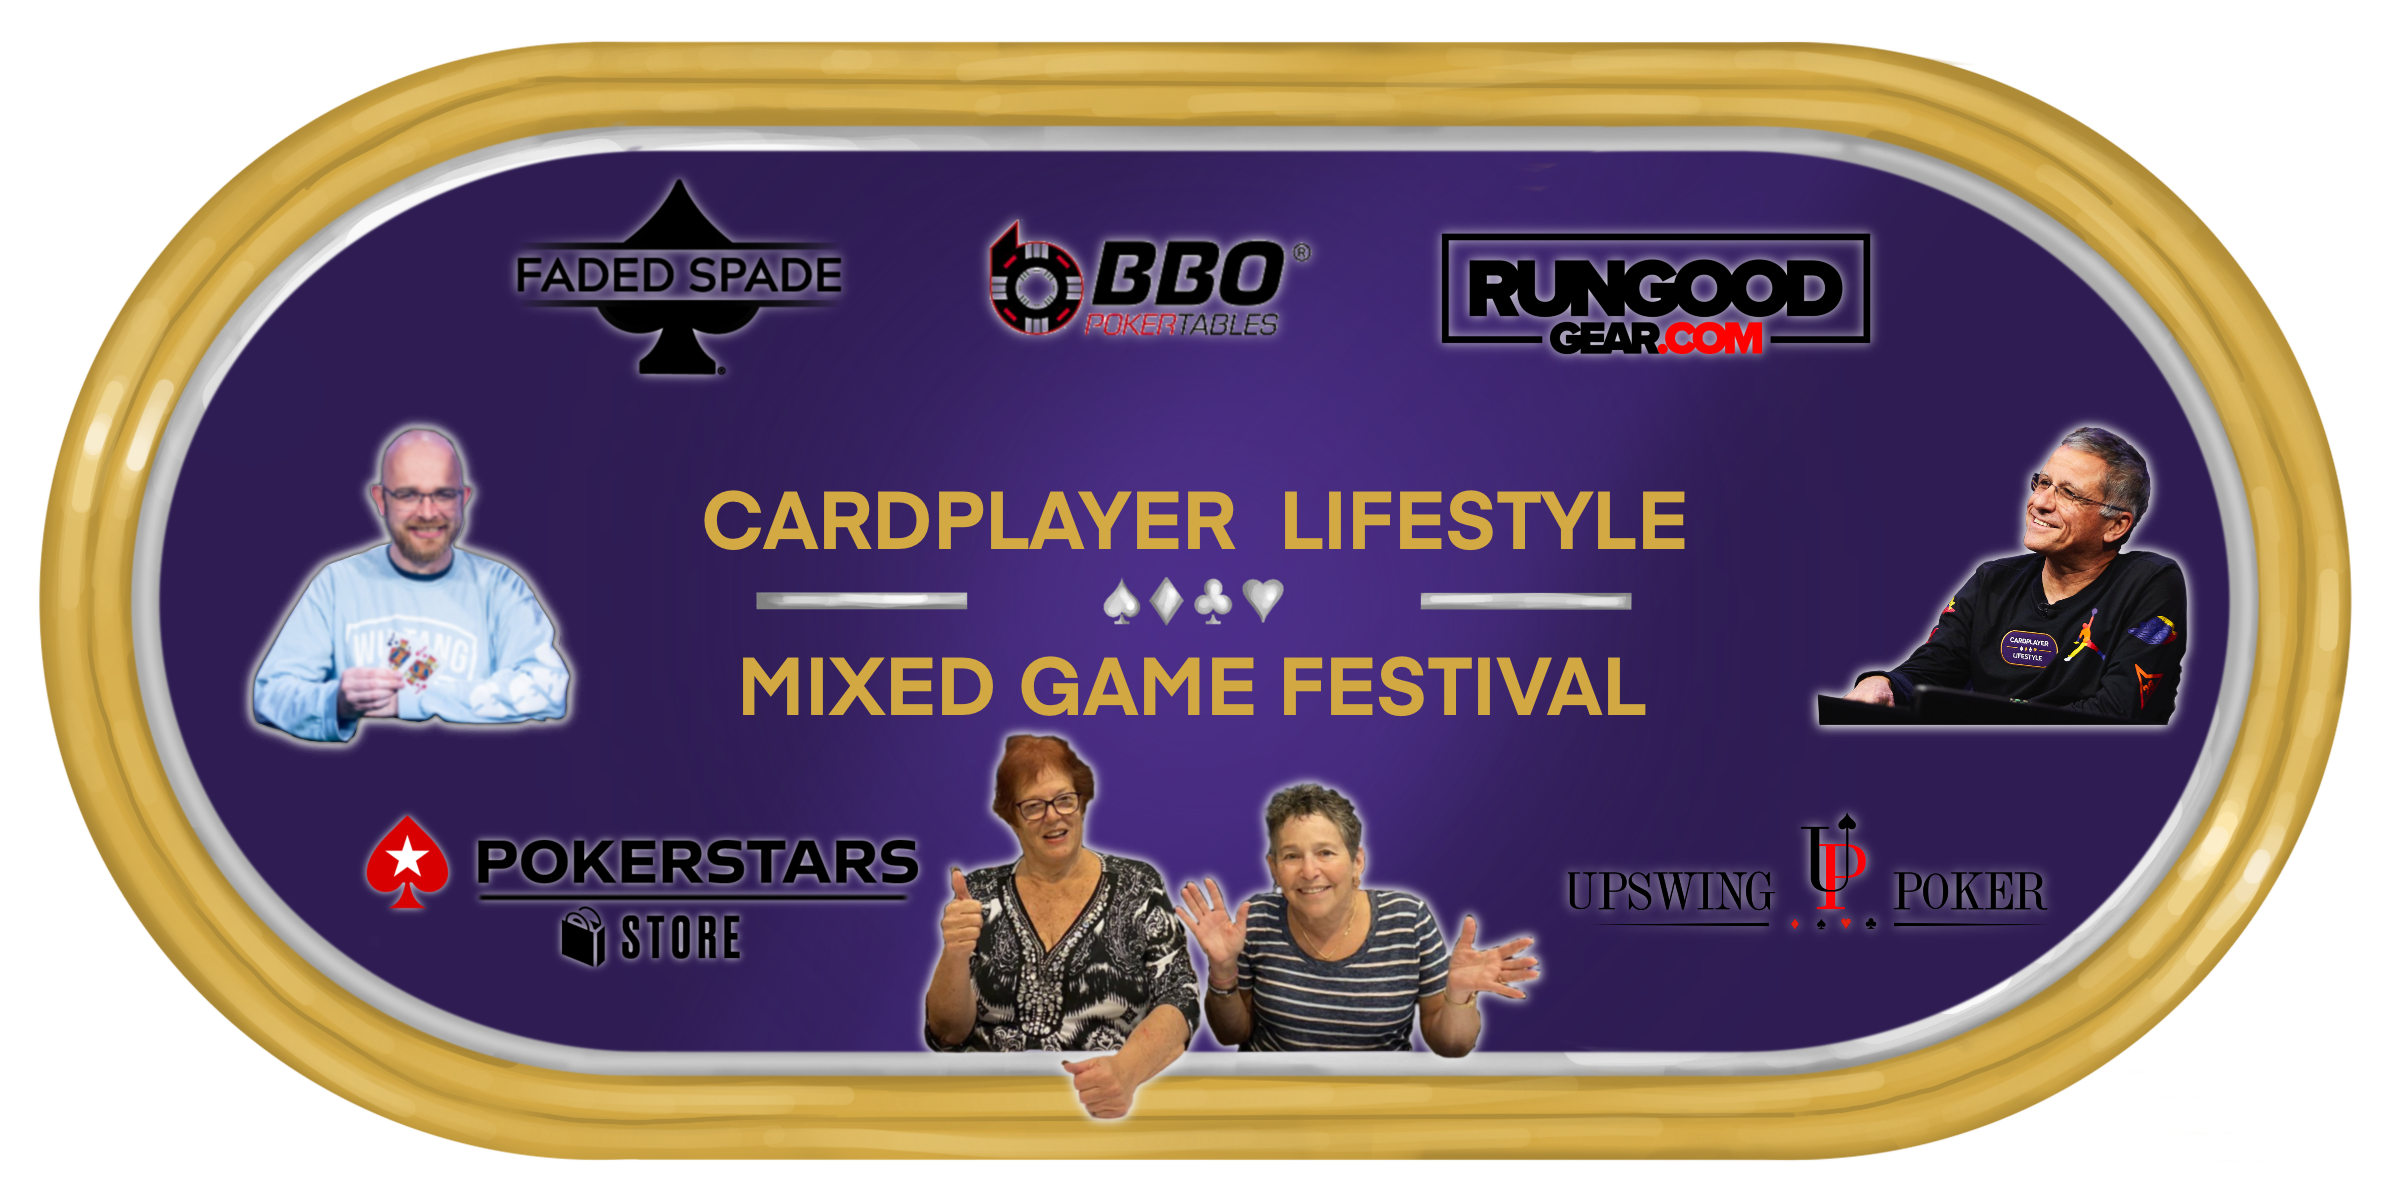 Mixed Game Festival extras